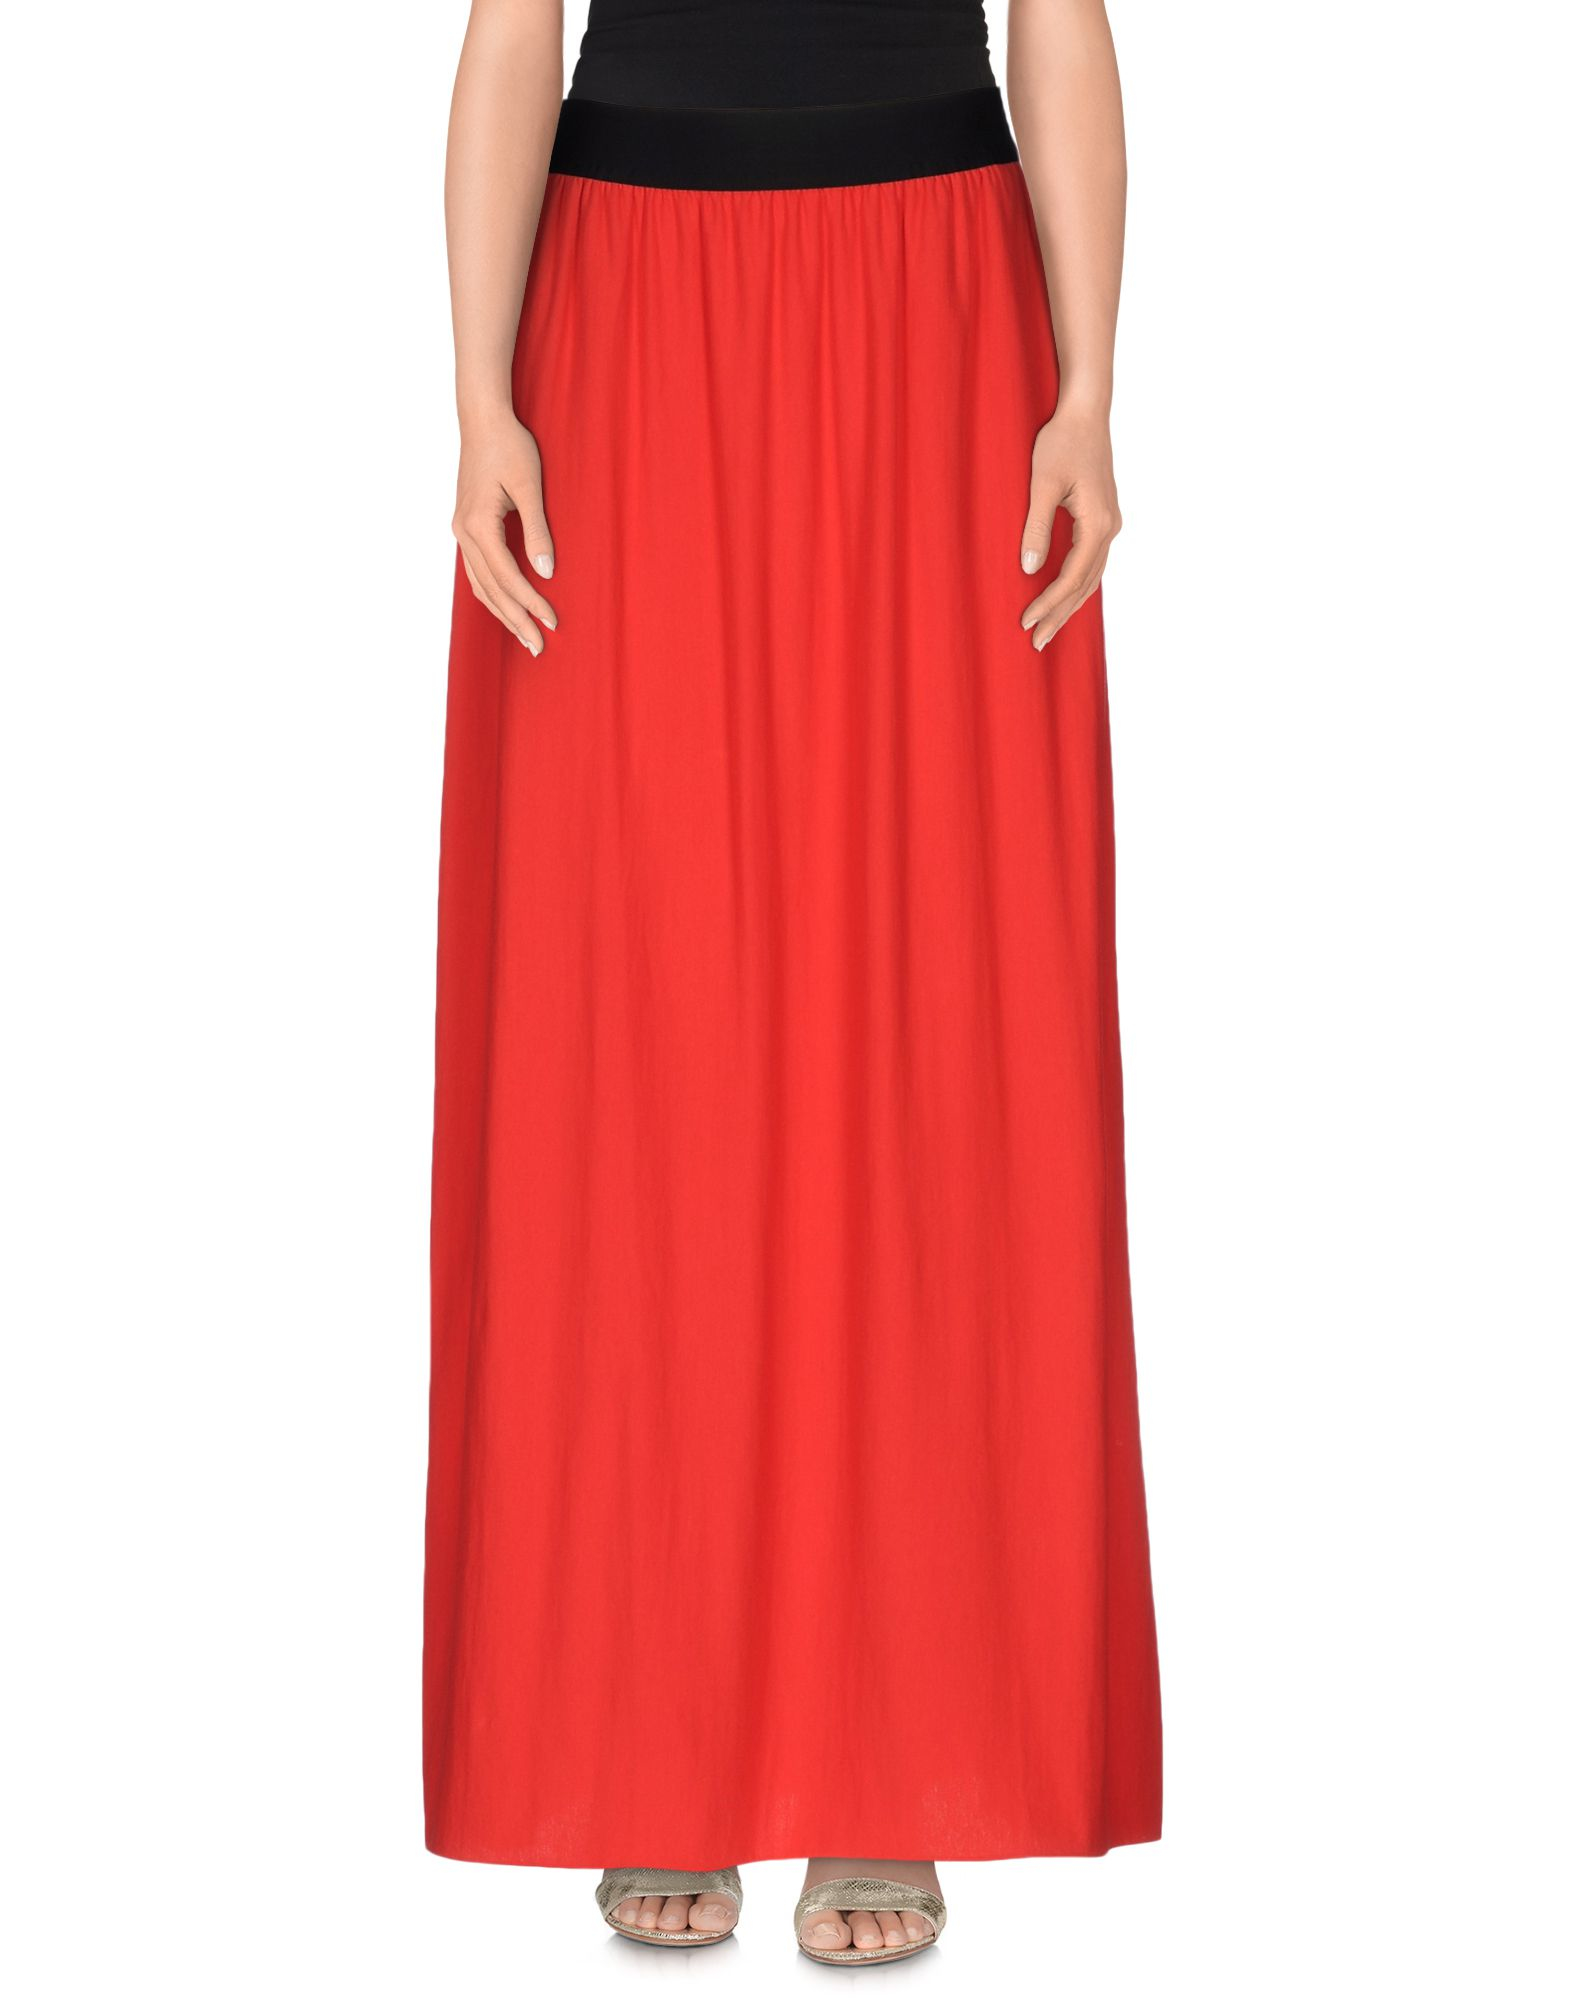 Lyst - Cycle Long Skirt in Red